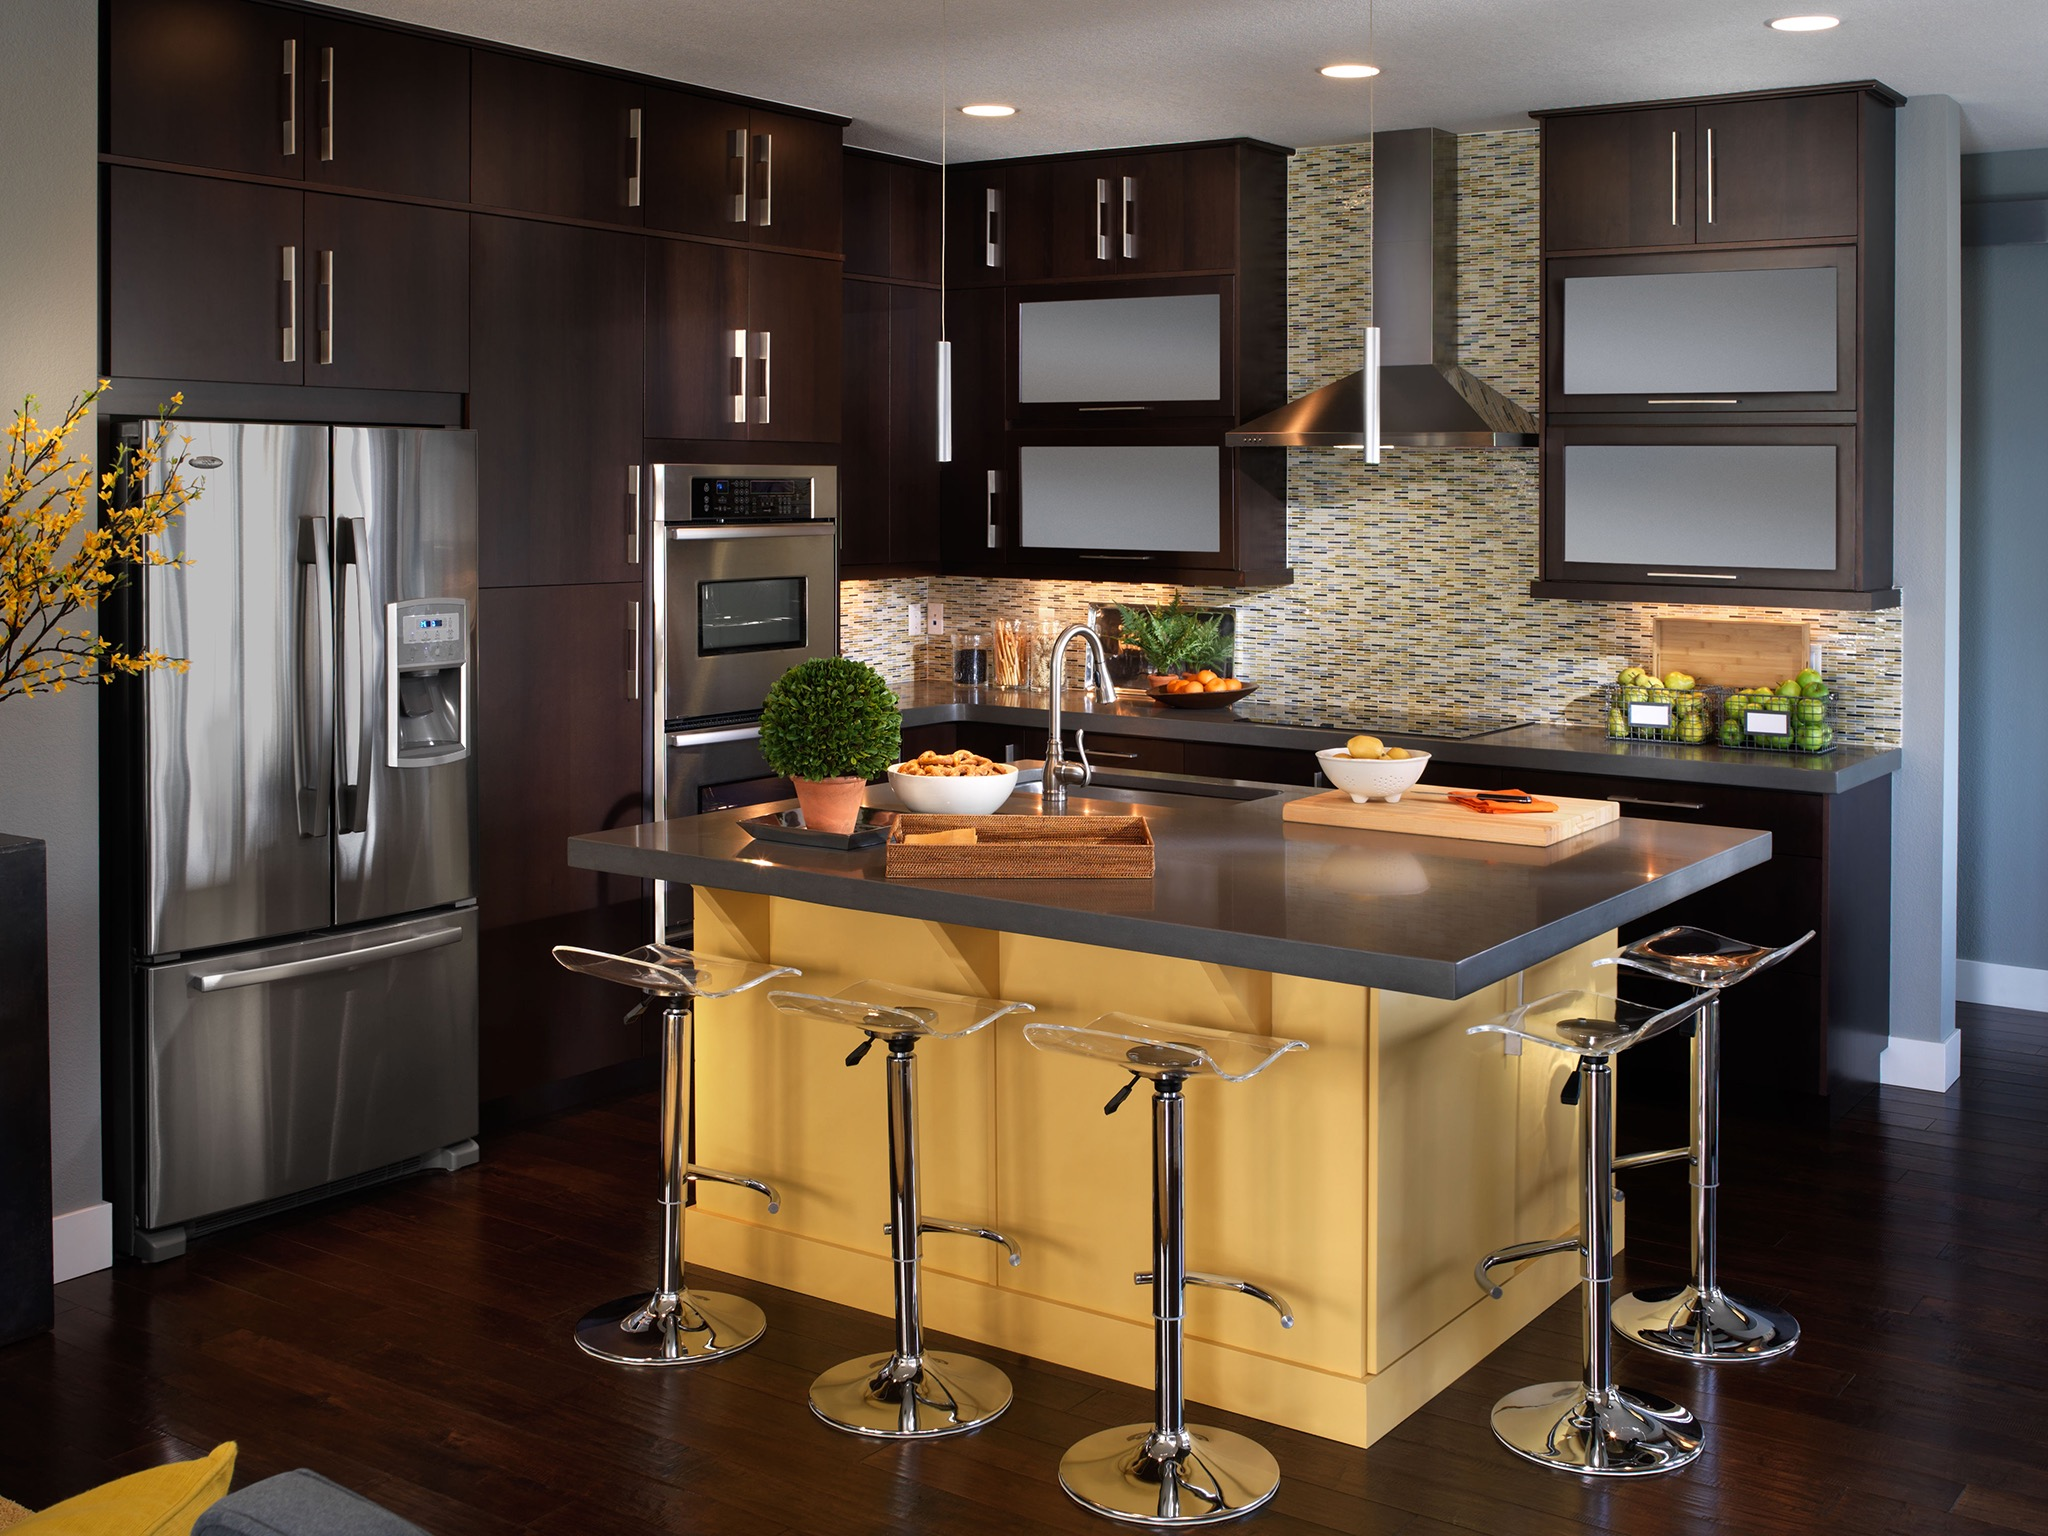 Dark Cabinetry For Contemporary Kitchen (Photo 7 of 18)